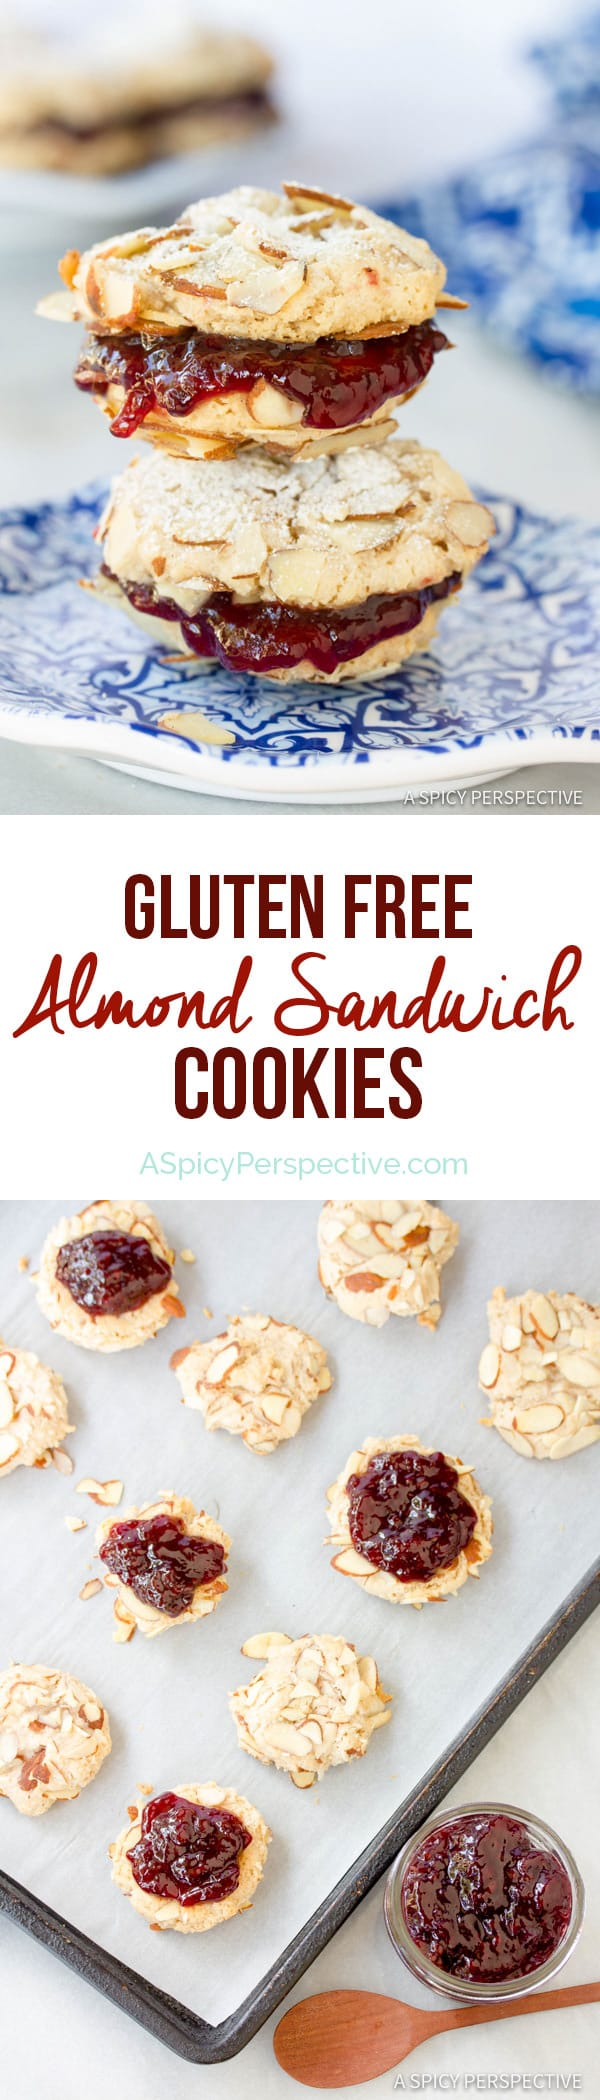 Amazing Gluten Free Almond Sandwich Cookies #christmas #holiday